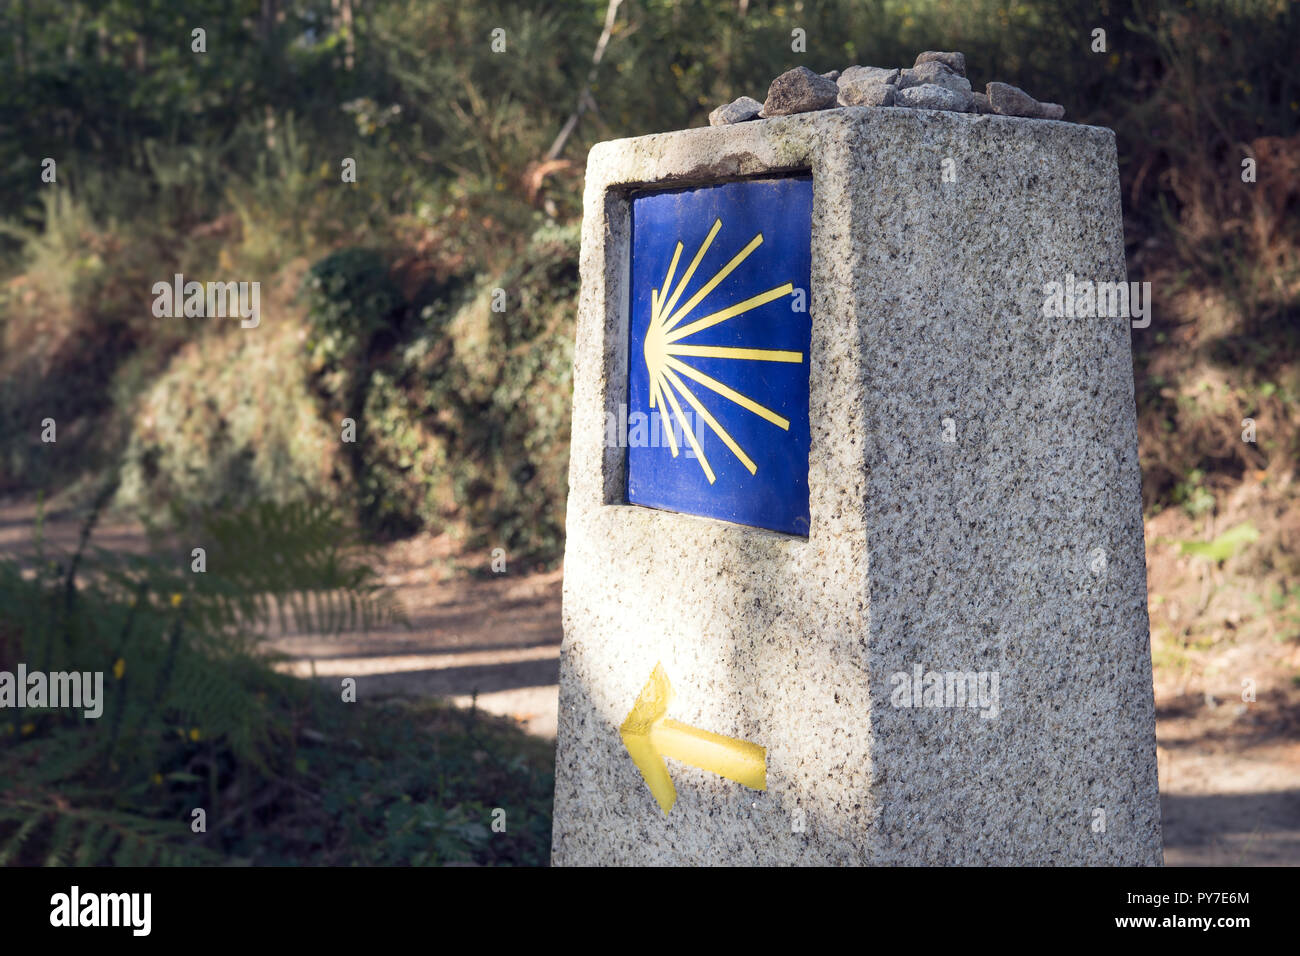 Camino de Santiago milestone with blurred path. Way of St. James signs Stock Photo